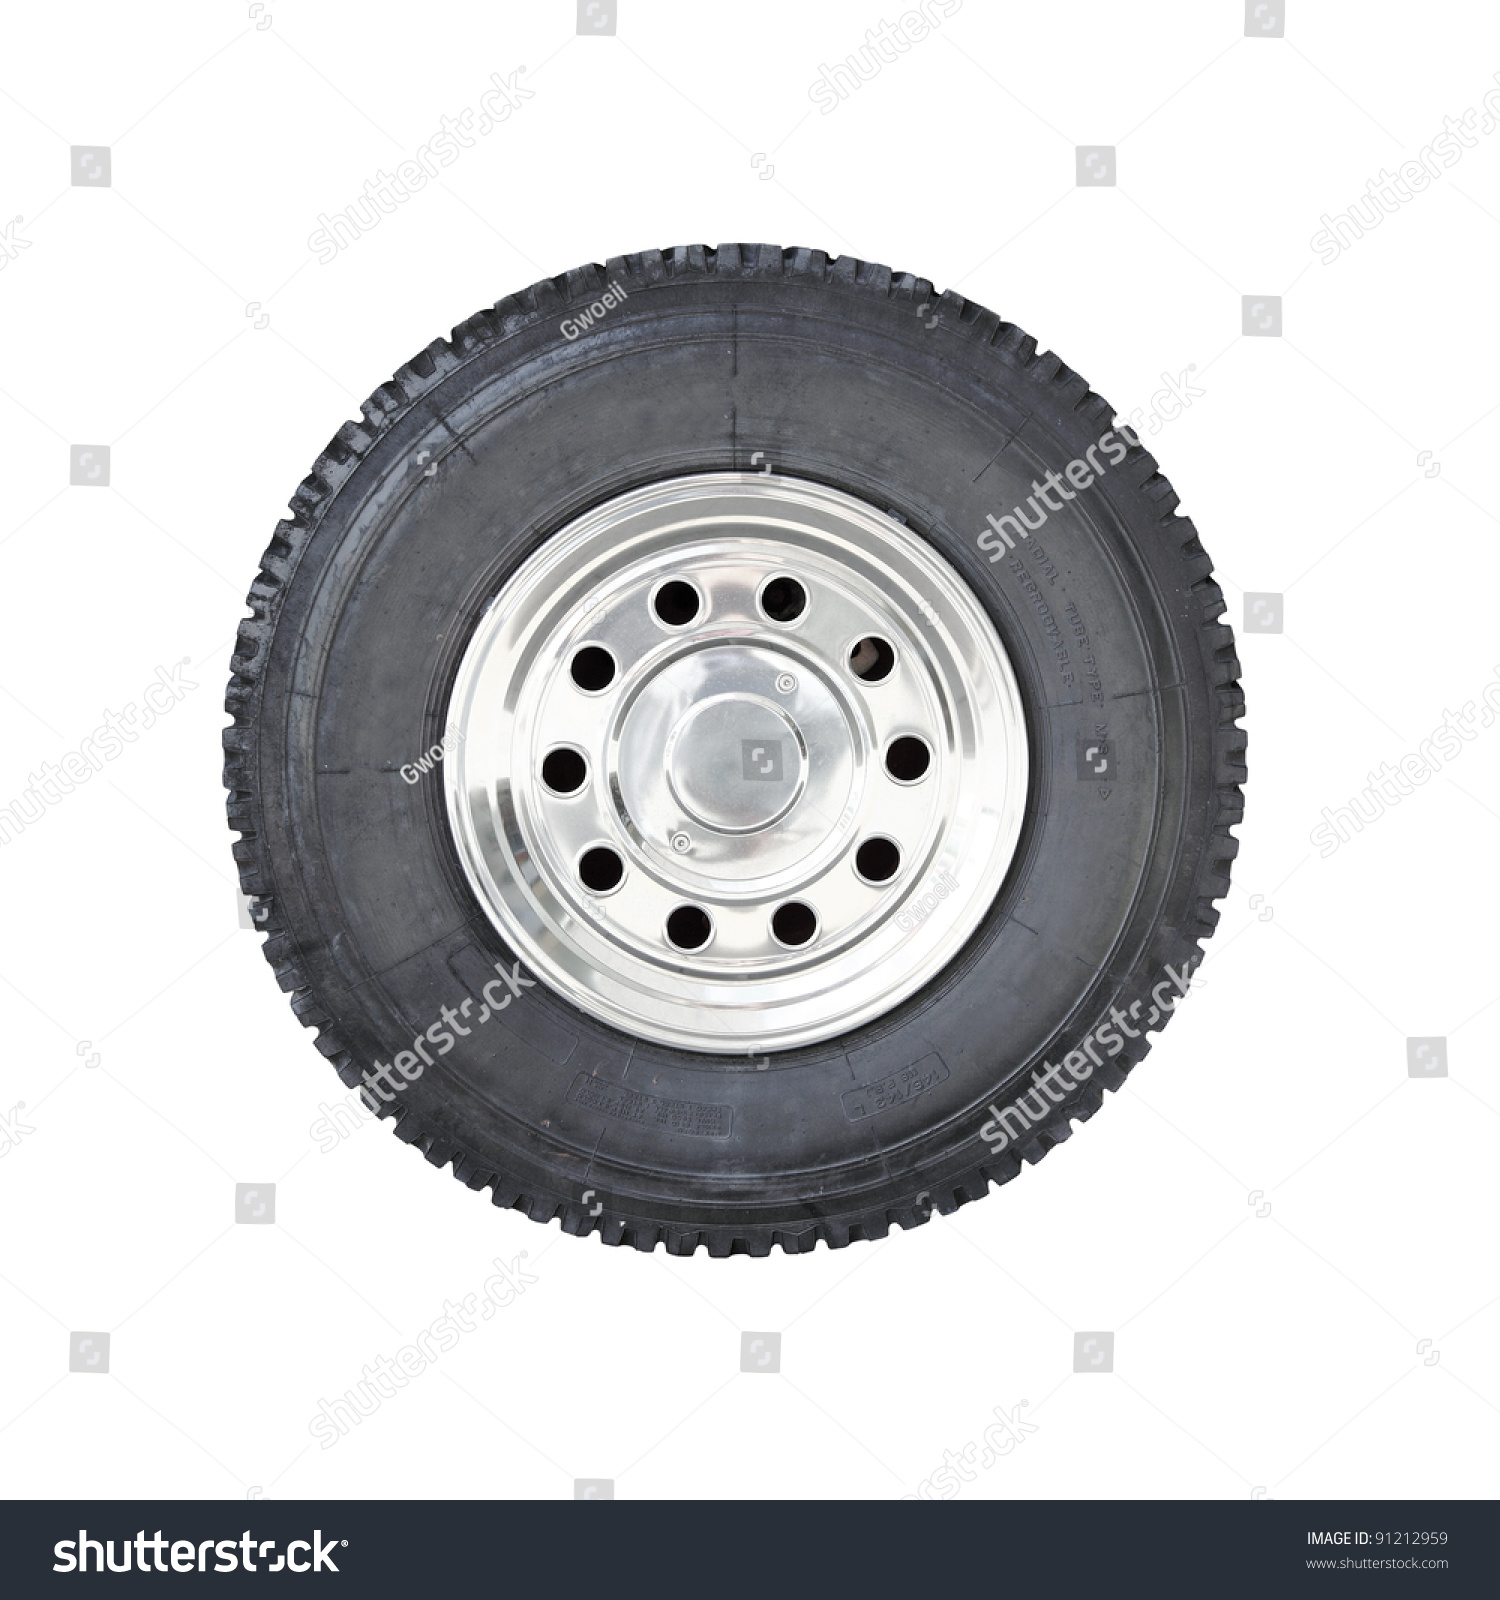 big rubber tire mounted on chrome stock photo 91212959 shutterstock. Black Bedroom Furniture Sets. Home Design Ideas